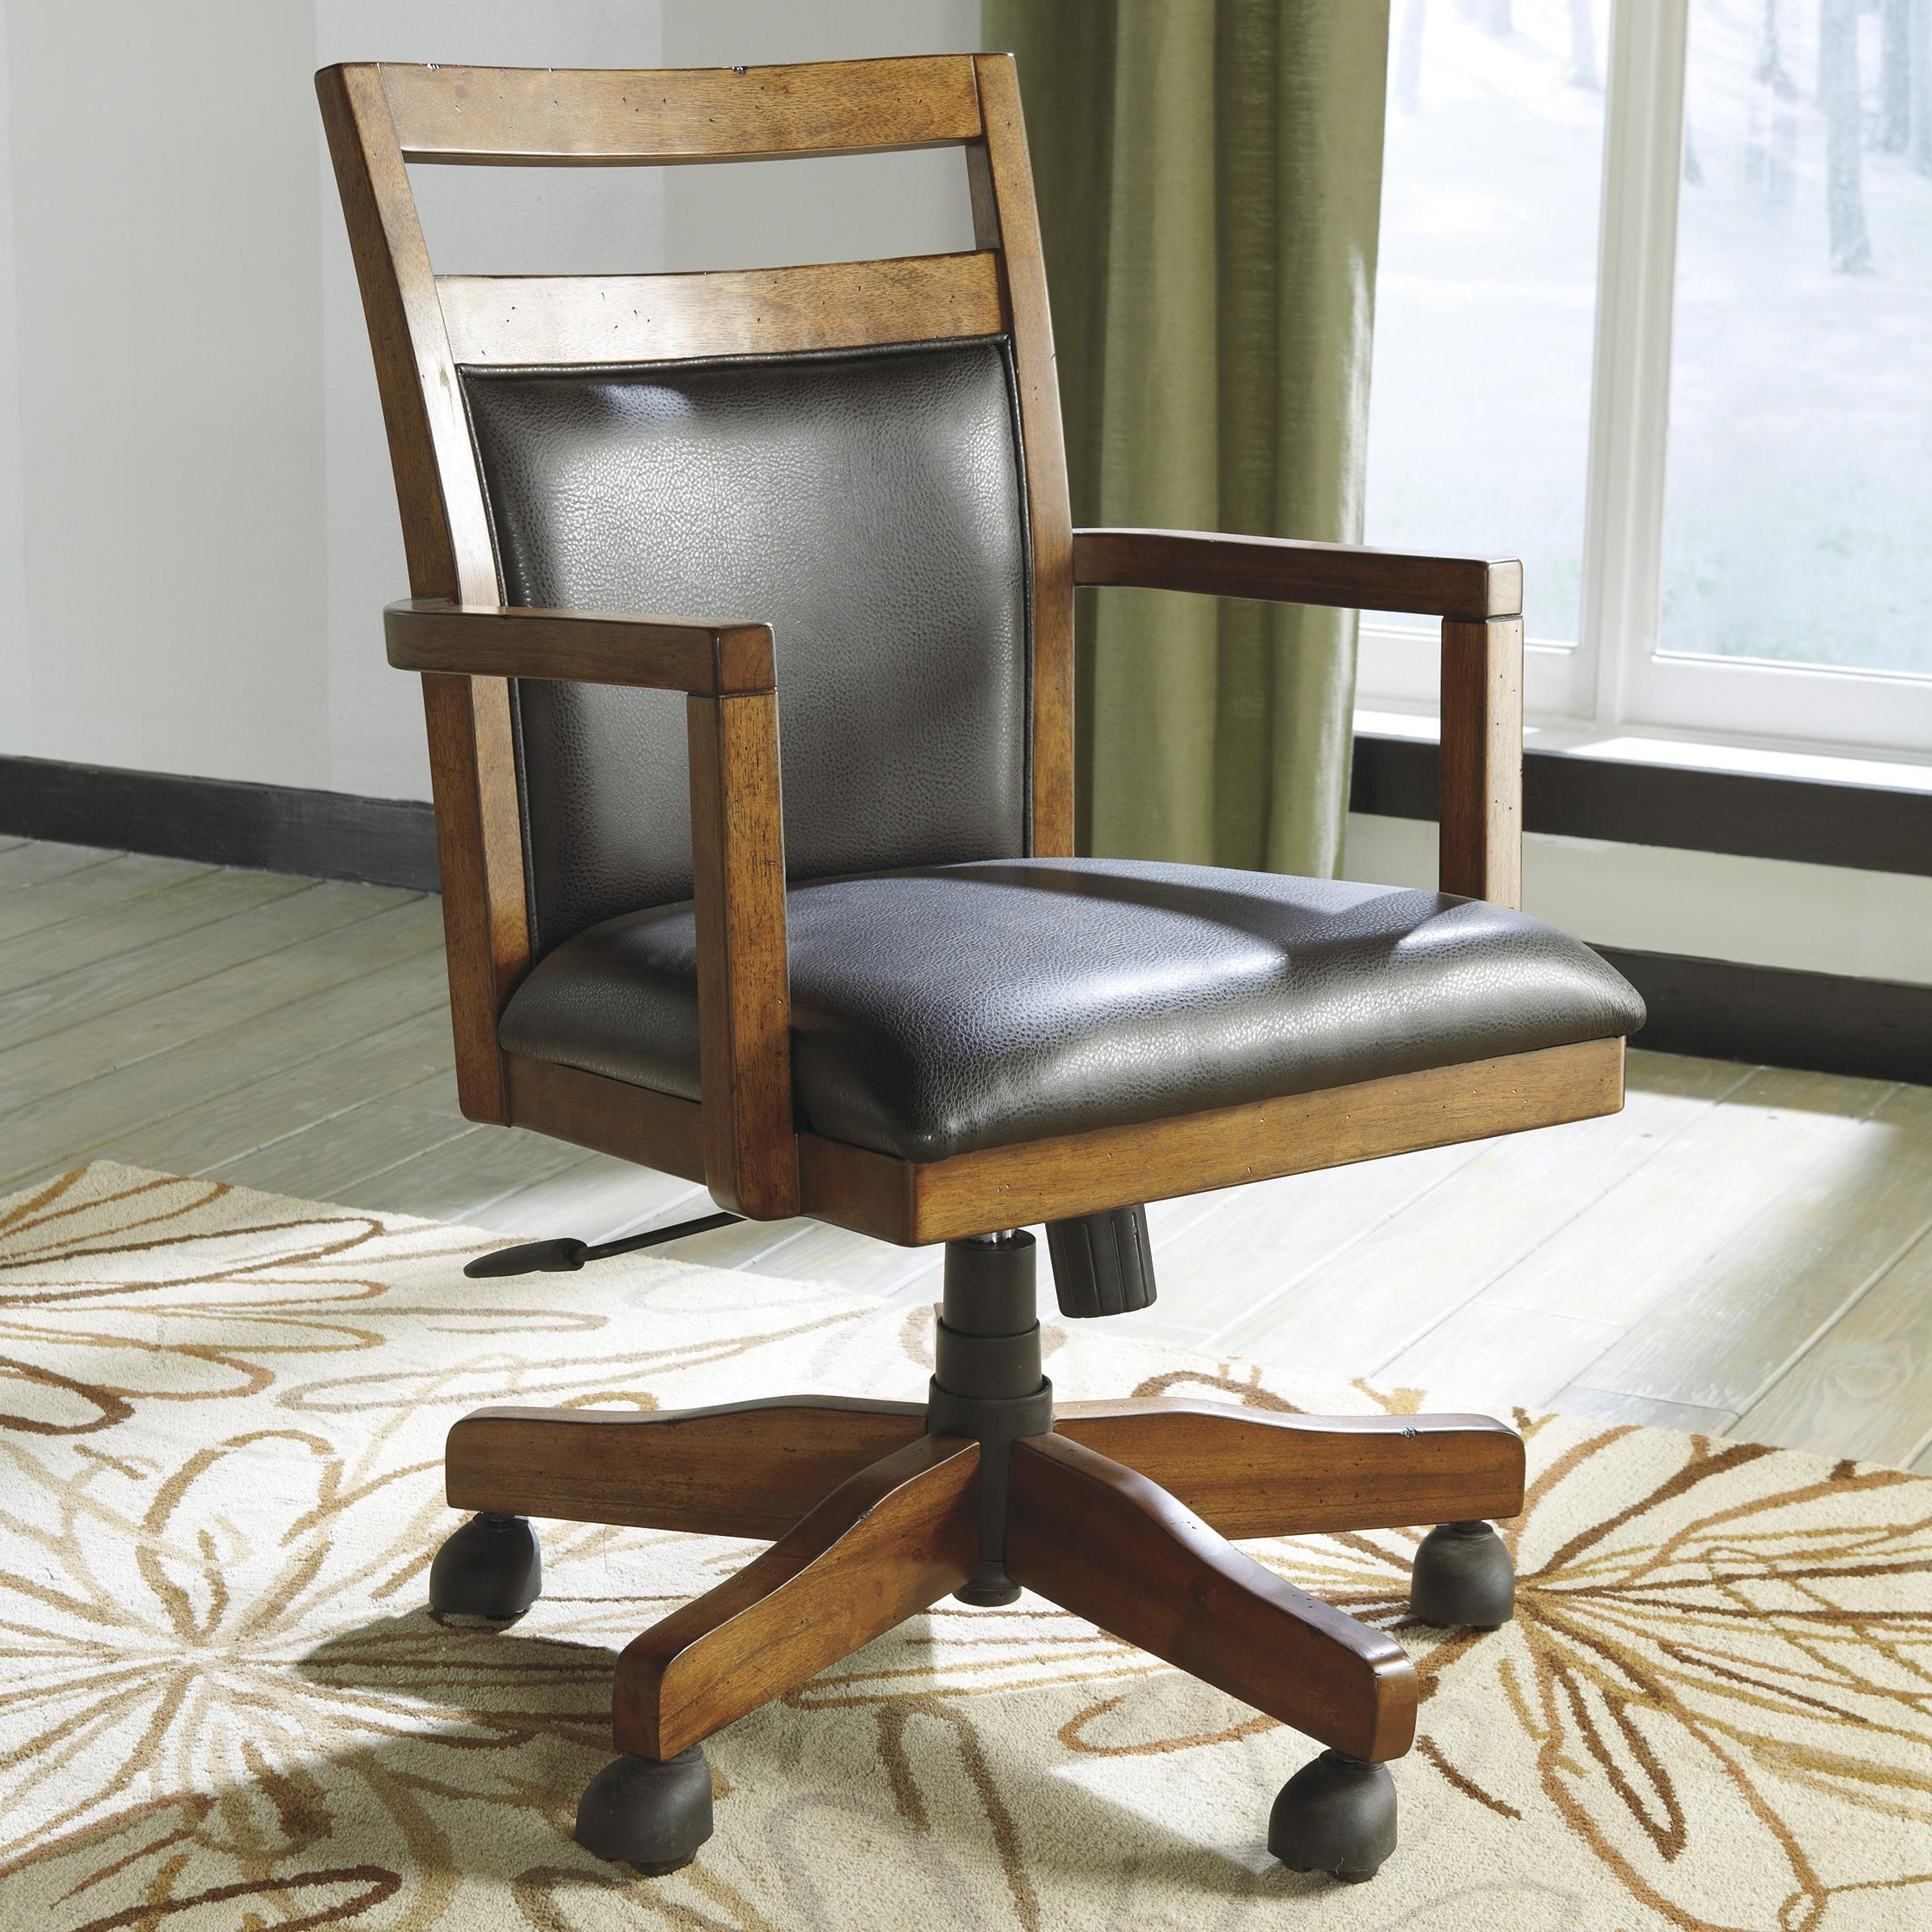 Home office desk chair with cutout detail by signature design by ashley wolf and gardiner wolf - Ashley furniture office desk ...